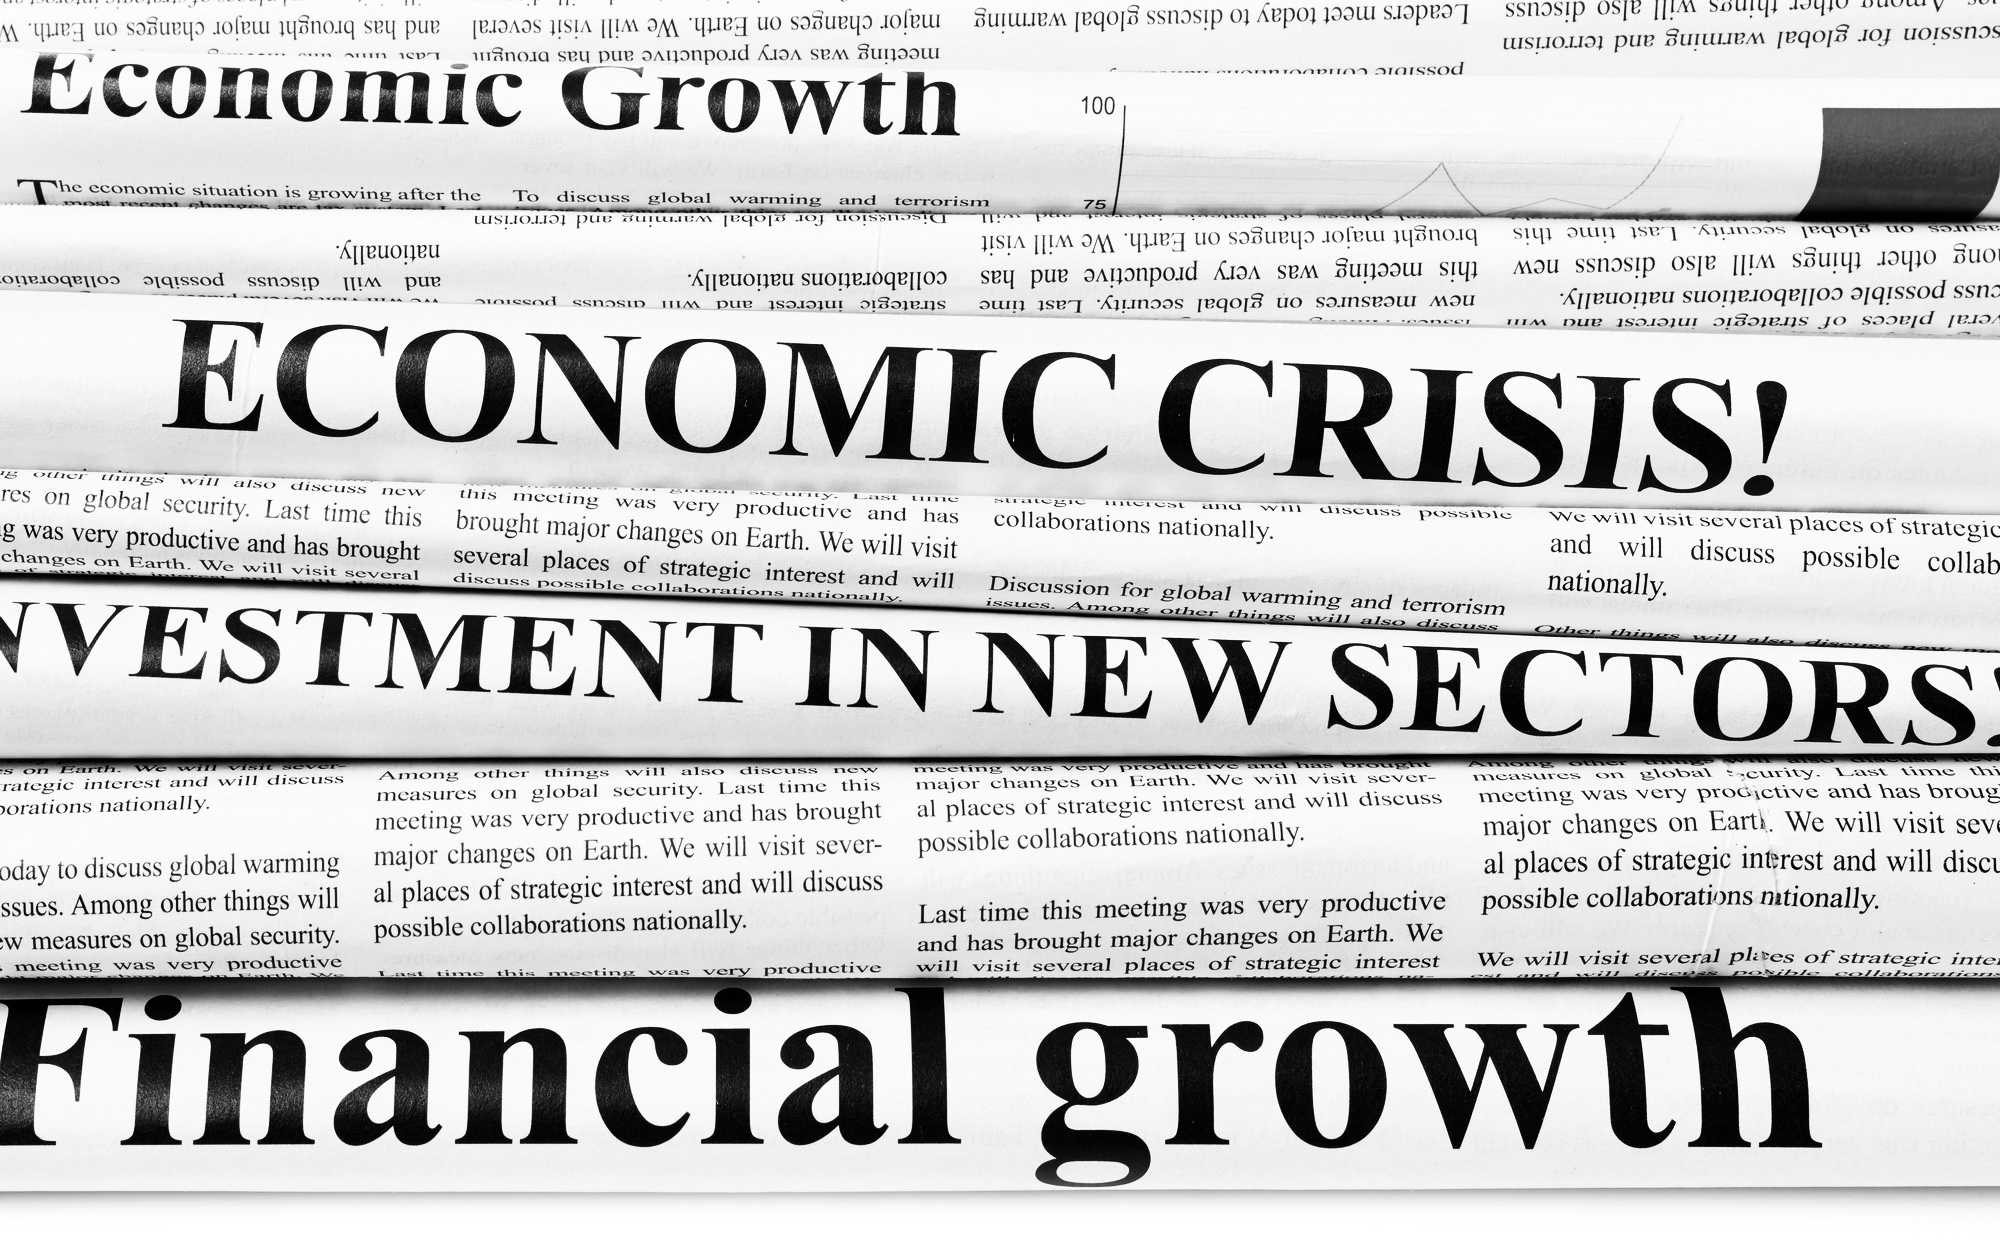 Market Newspaper headlines